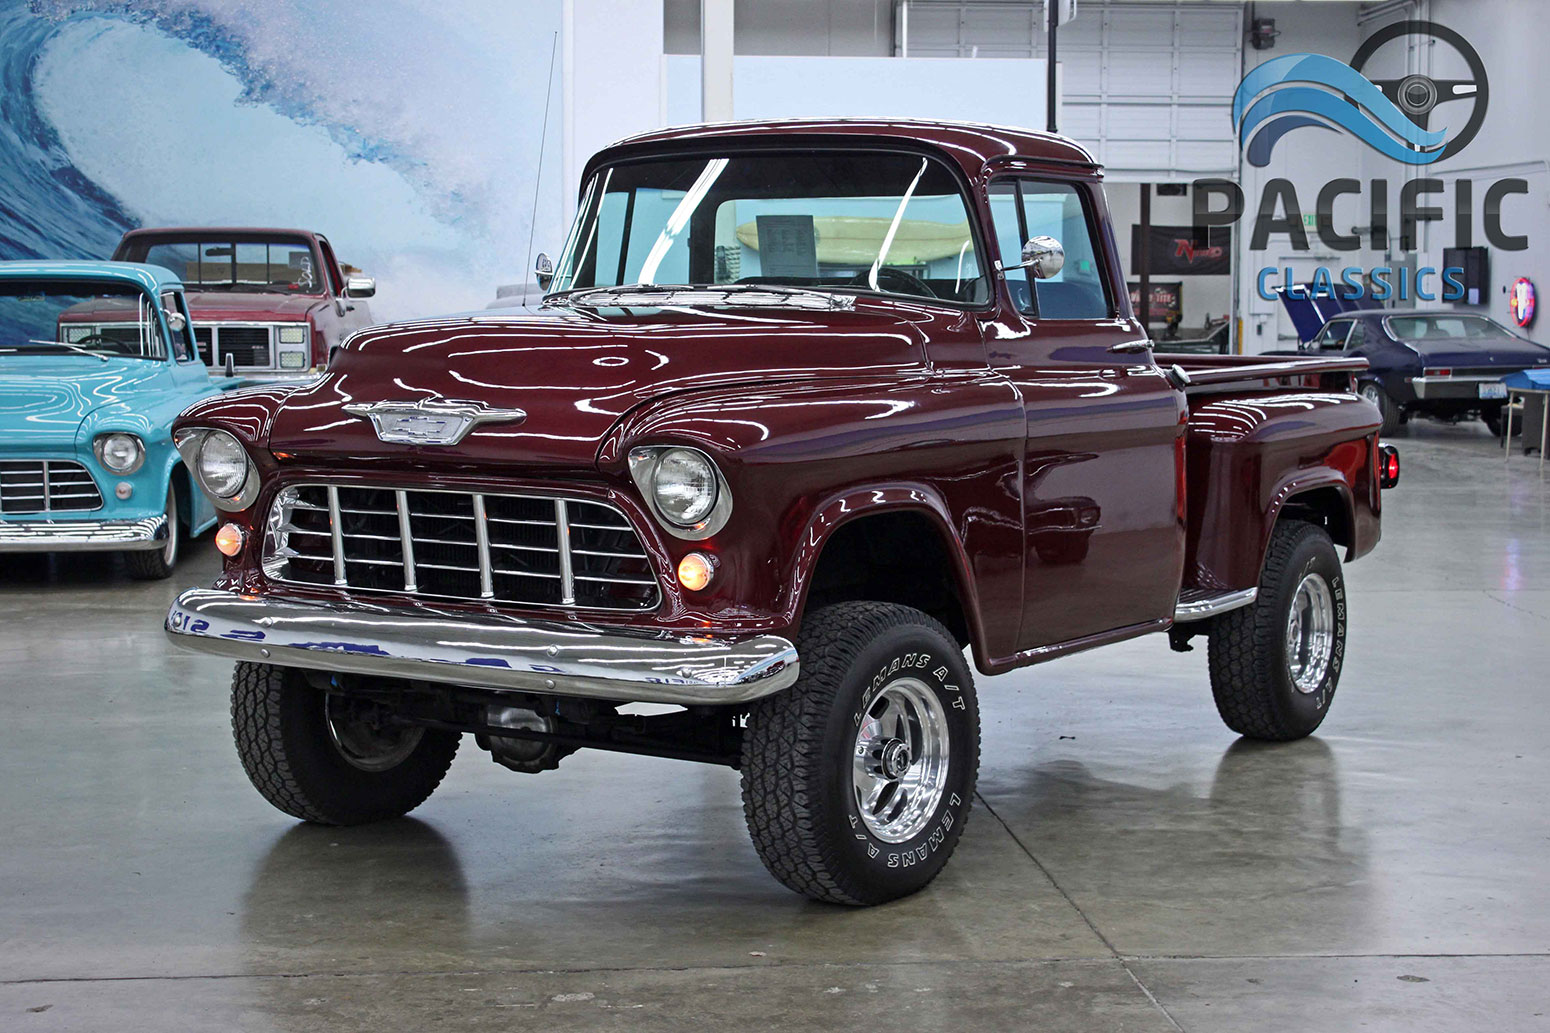 1955 Chevrolet 4x4 Pickup Pacific Classics